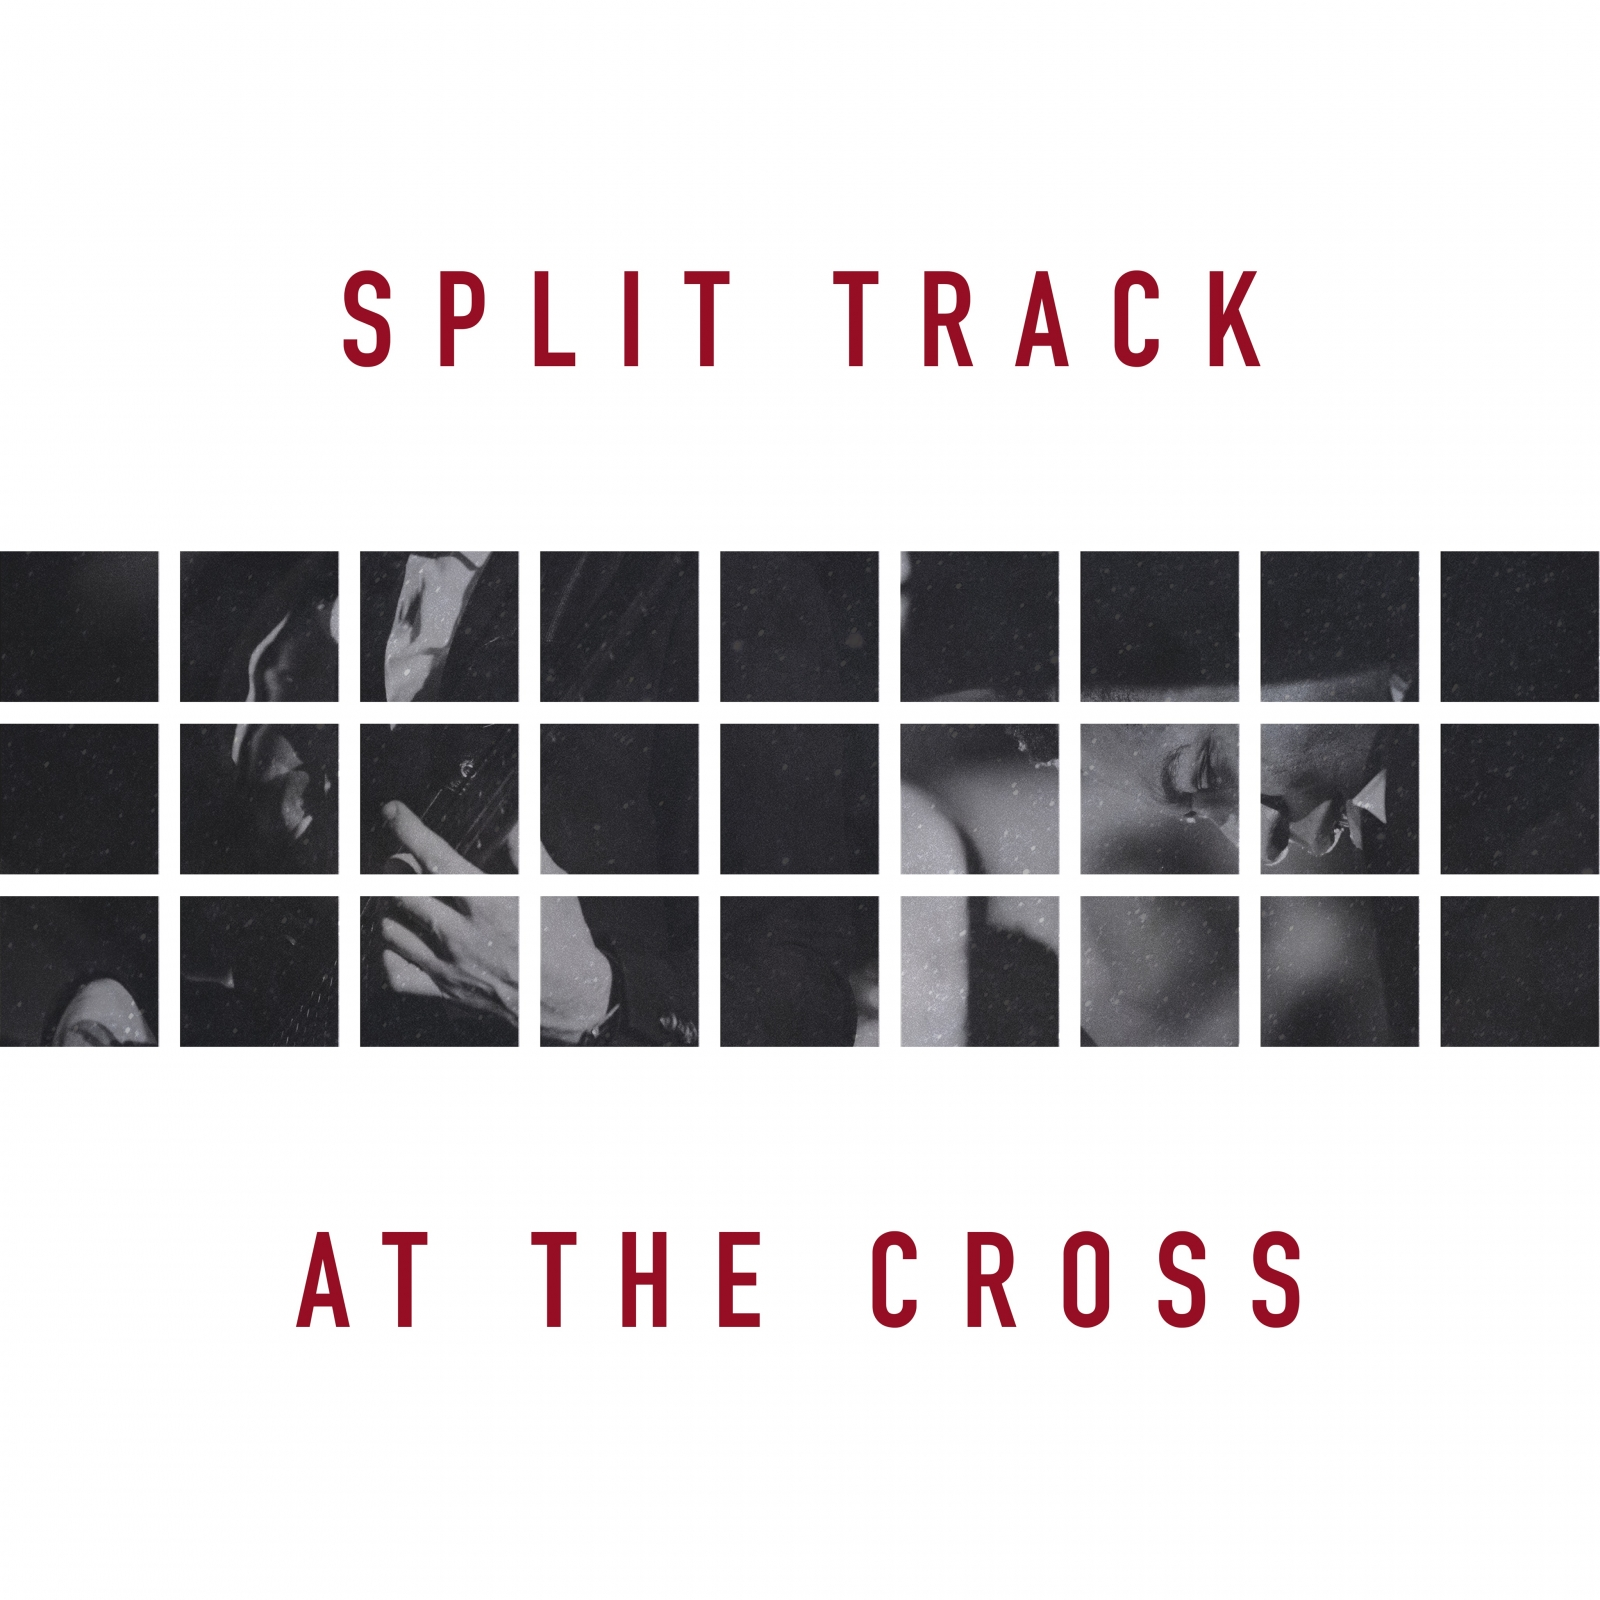 Split Tracks (CD) - At the Cross